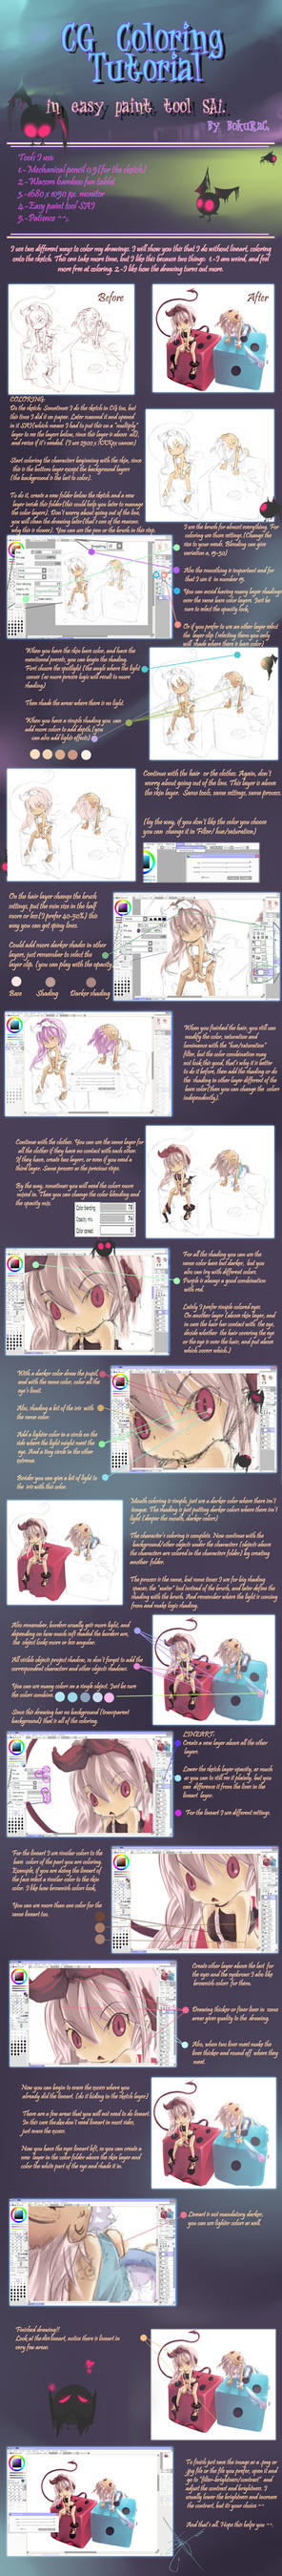 CG coloring Tutorial by Luky-Yuki